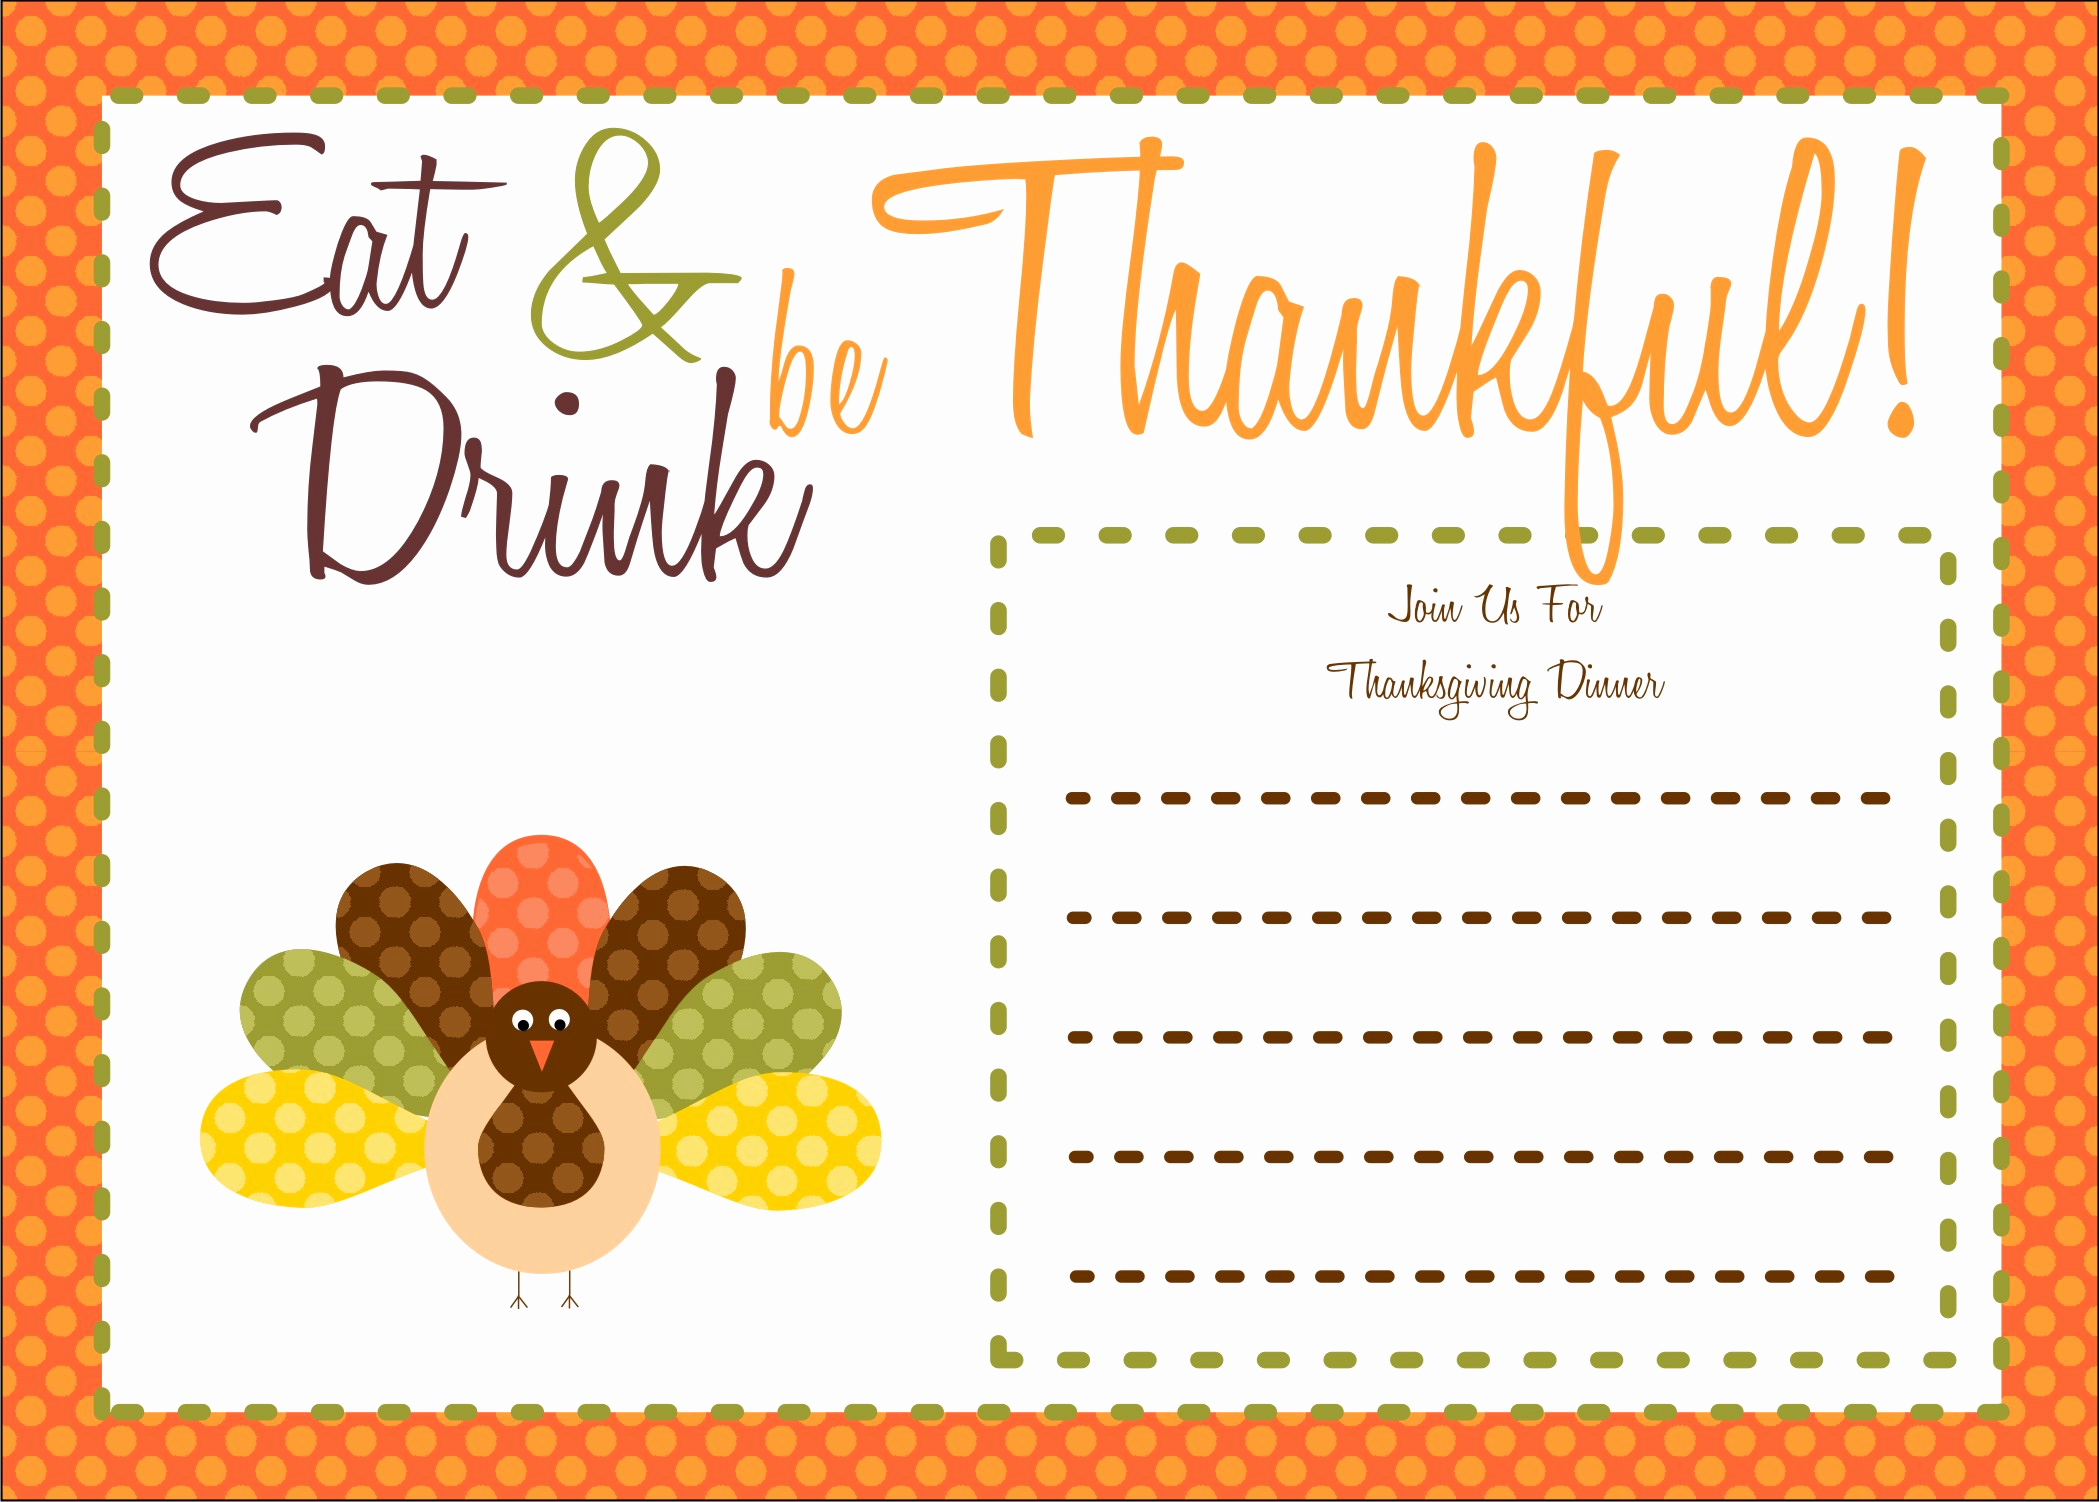 Free Thanksgiving Invitation Templates Inspirational Free Thanksgiving Printables From the Party Bakery